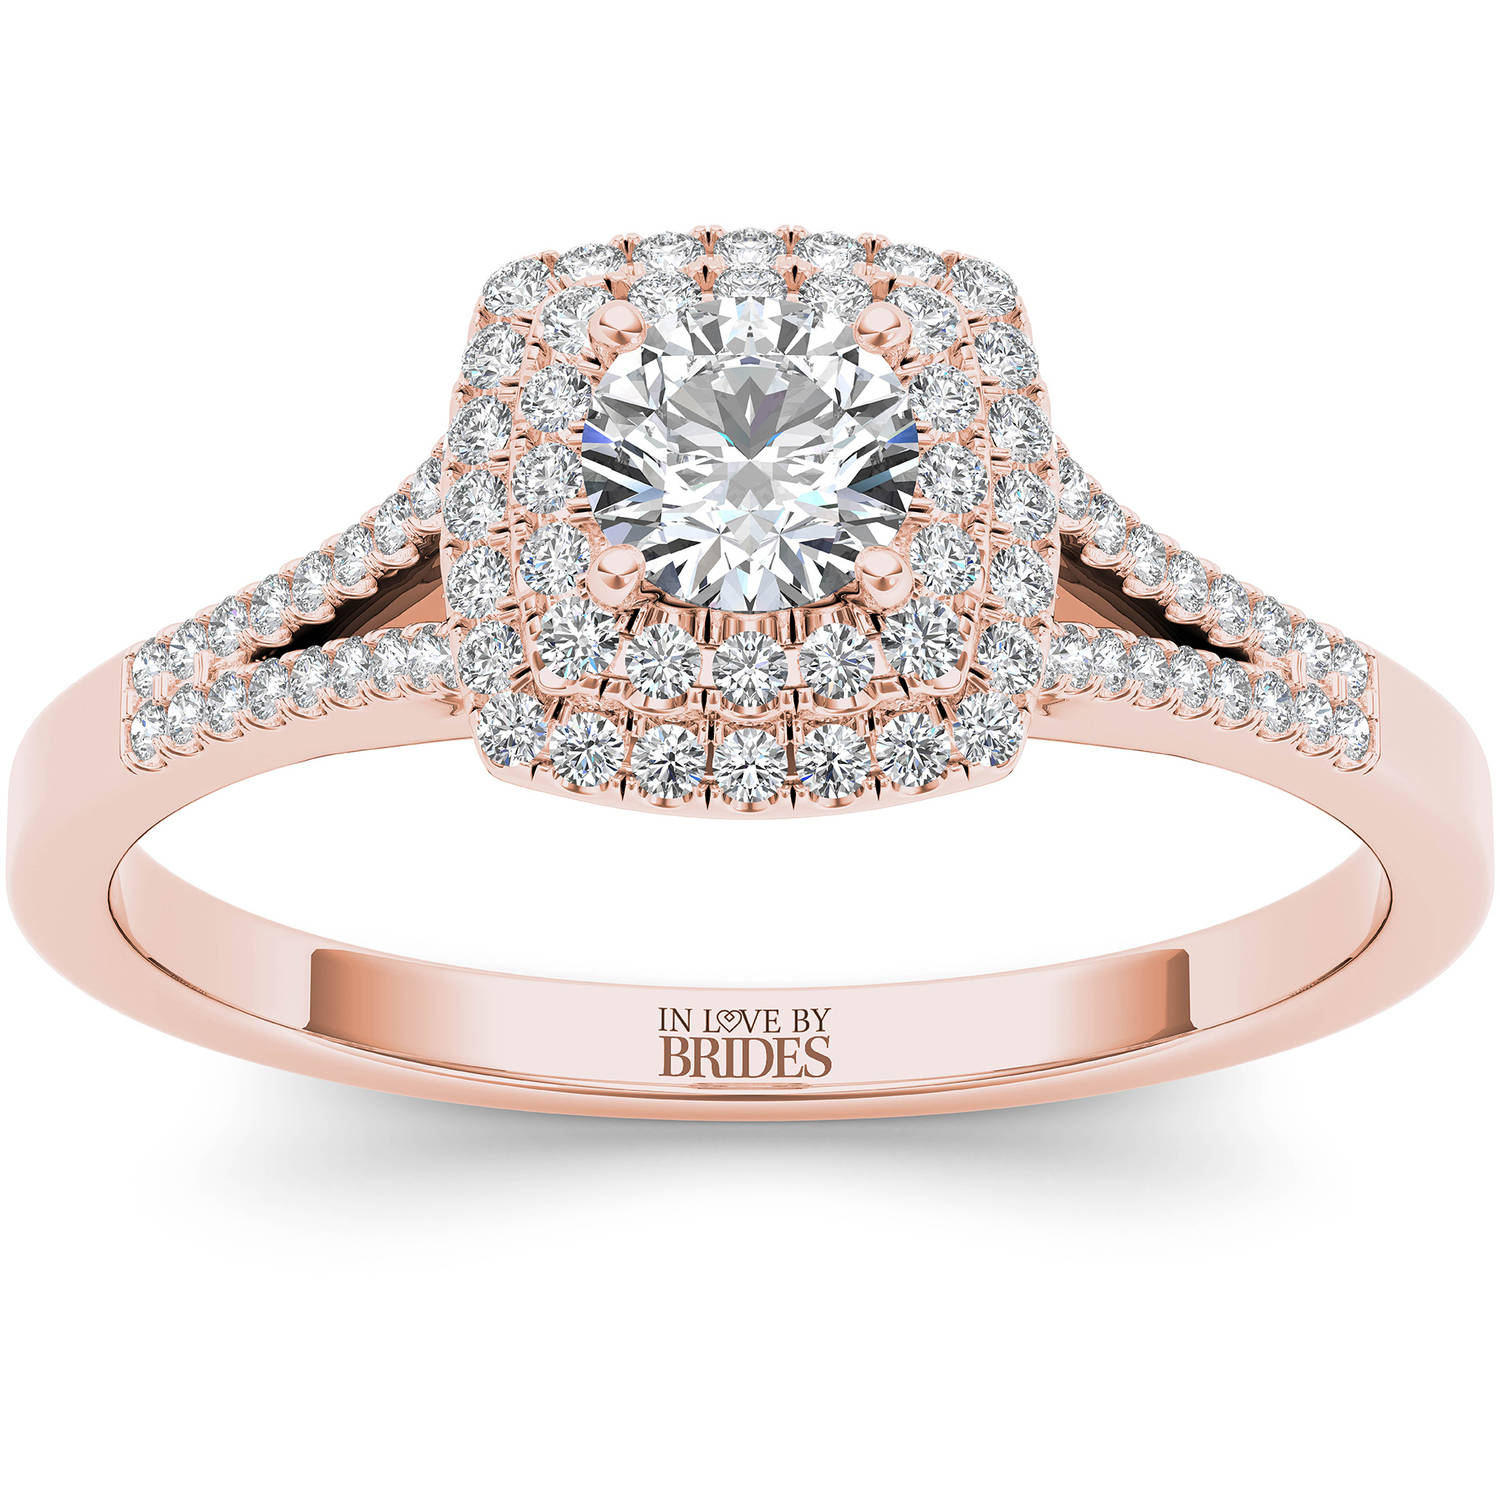 IN LOVE BY BRIDES 1/2 Carat T.W. Certified Diamond Double Halo 14kt Pink Gold Engagement Ring